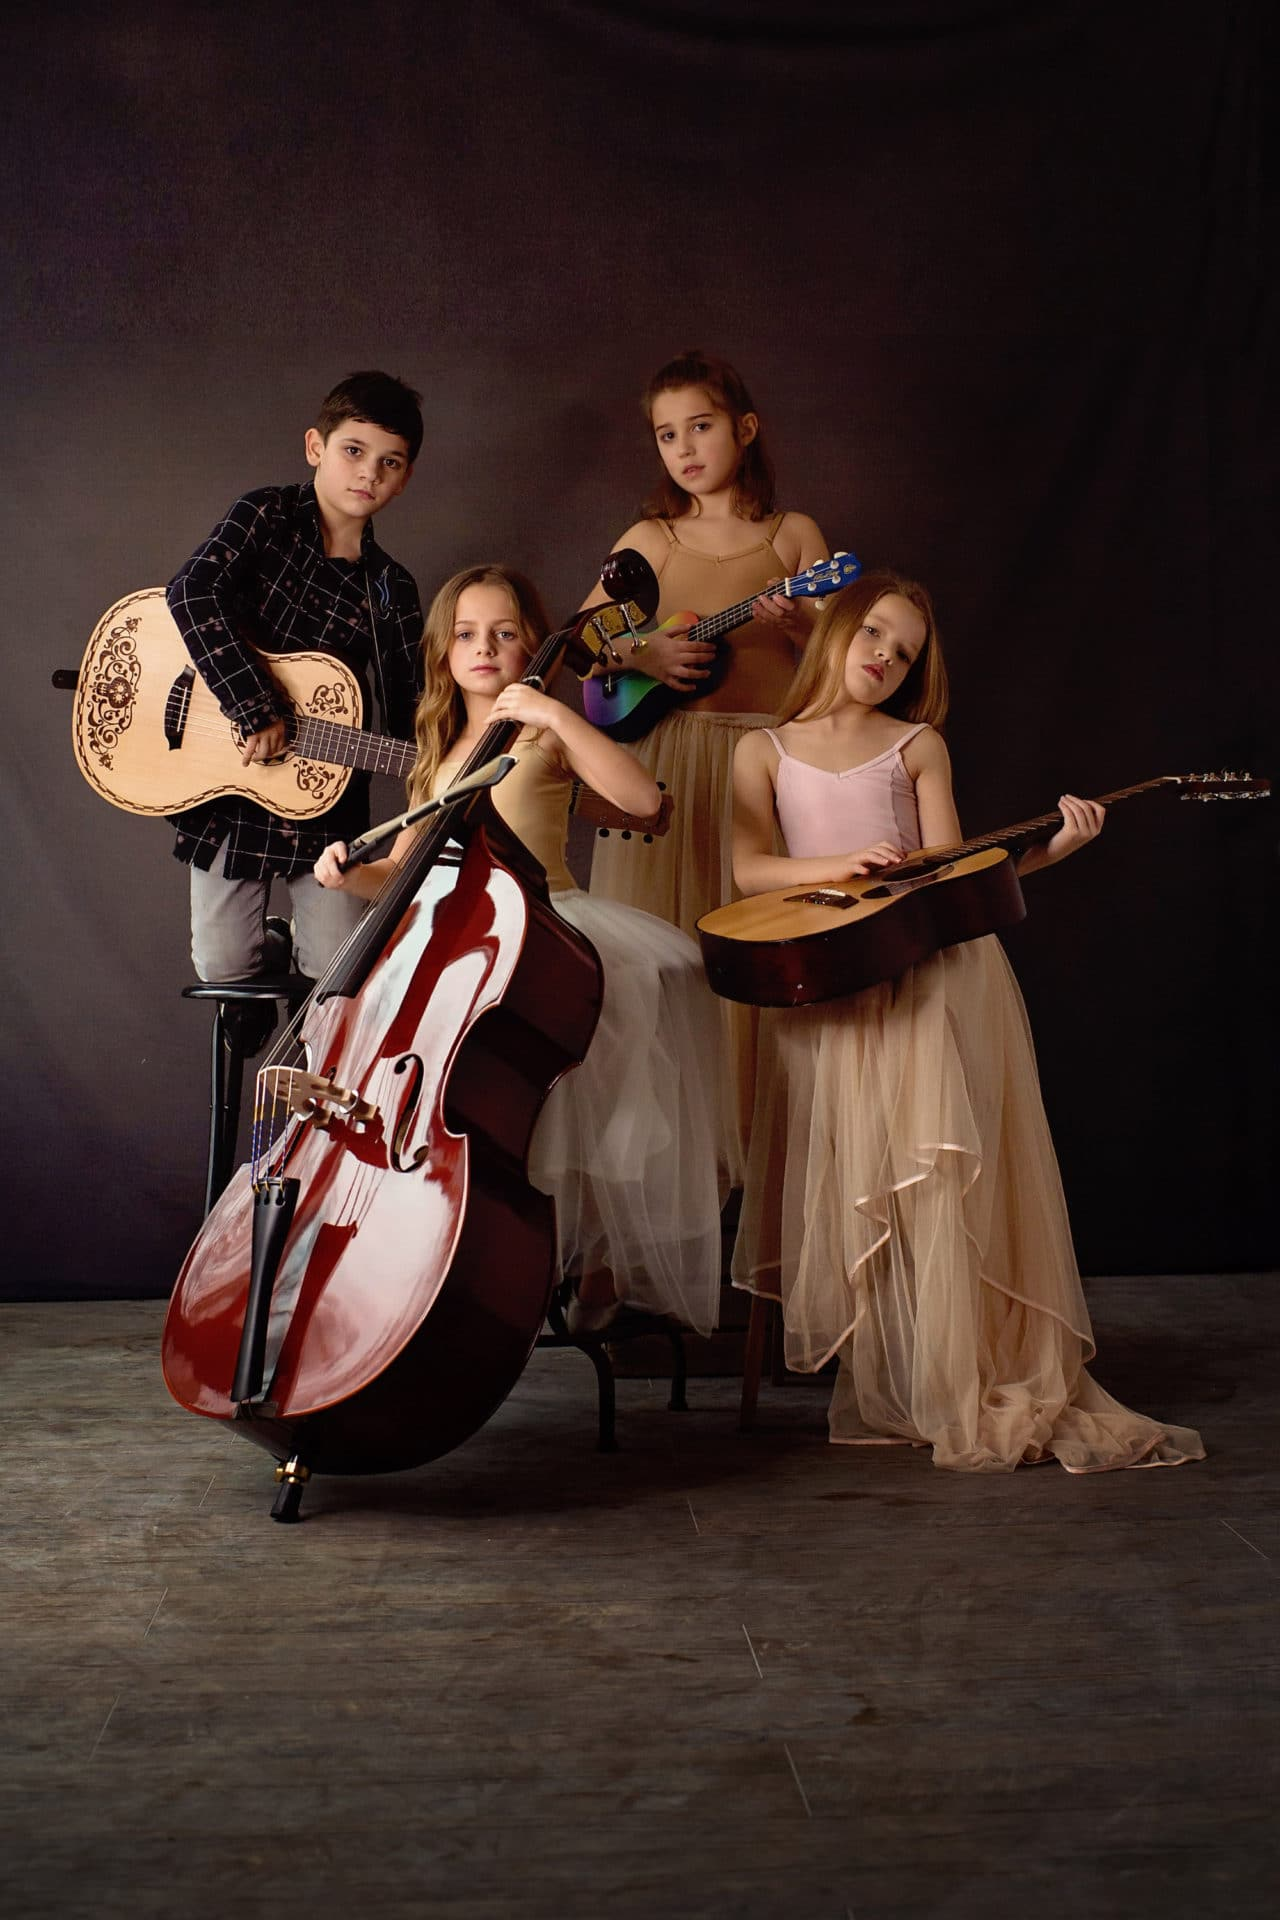 musician photos, child photography, roswell portraits studio